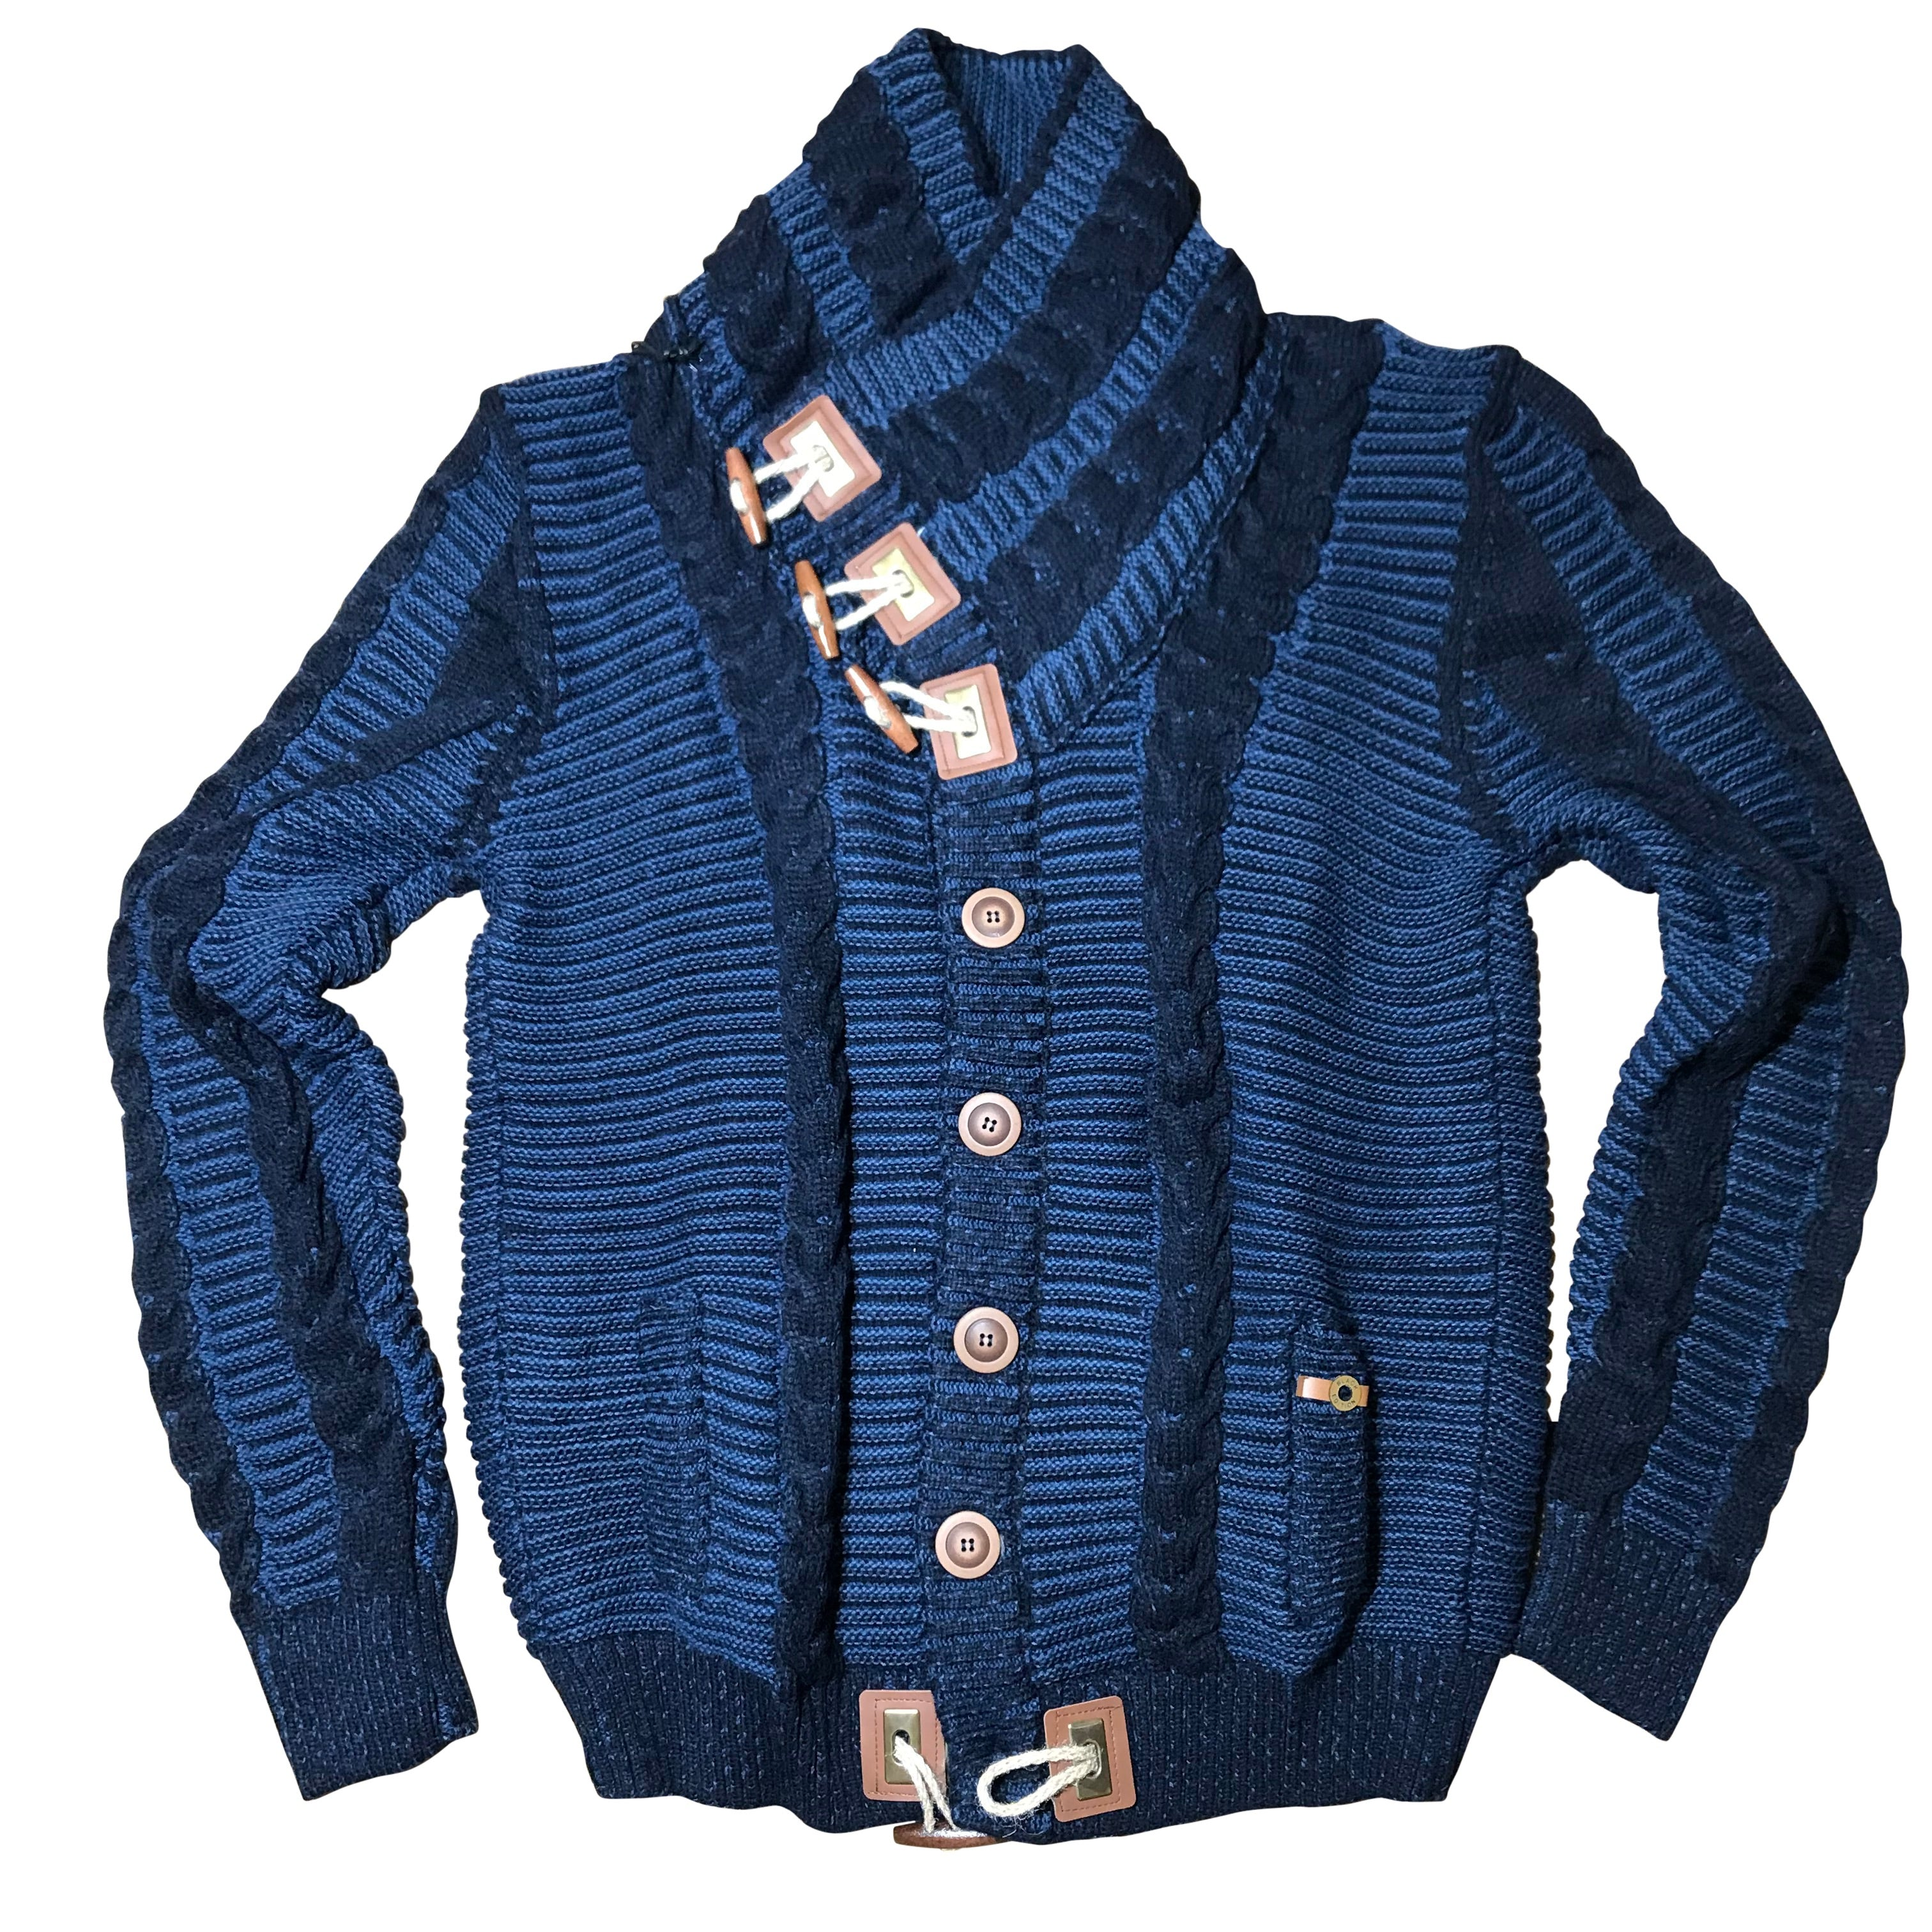 LCR SWEATER NAVY/BLUE